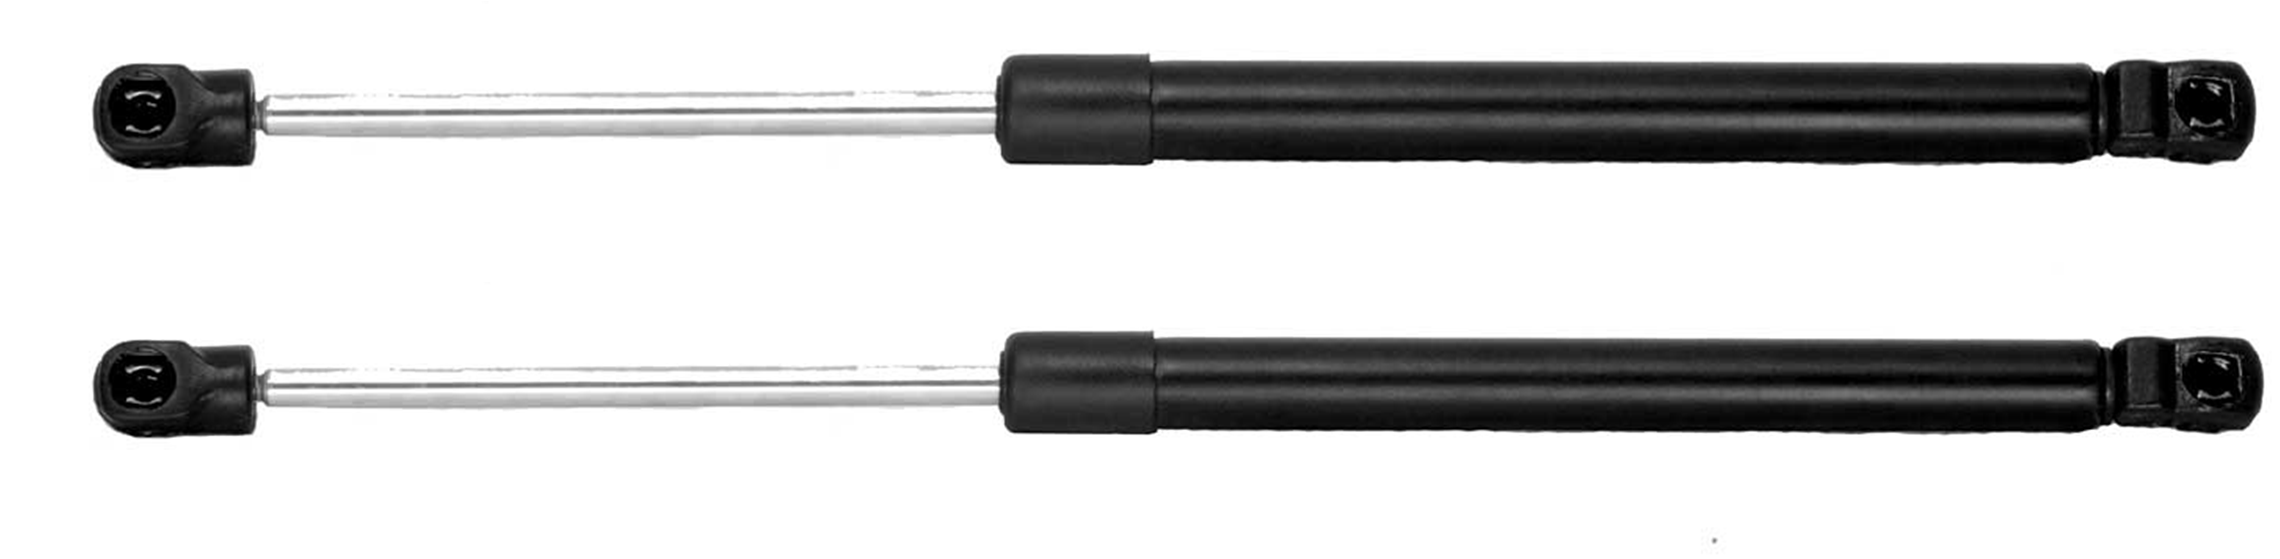 MANTRA DICKY SHOCK ABSORBER-Maruti Suzuki Swift(set of 2 pcs)